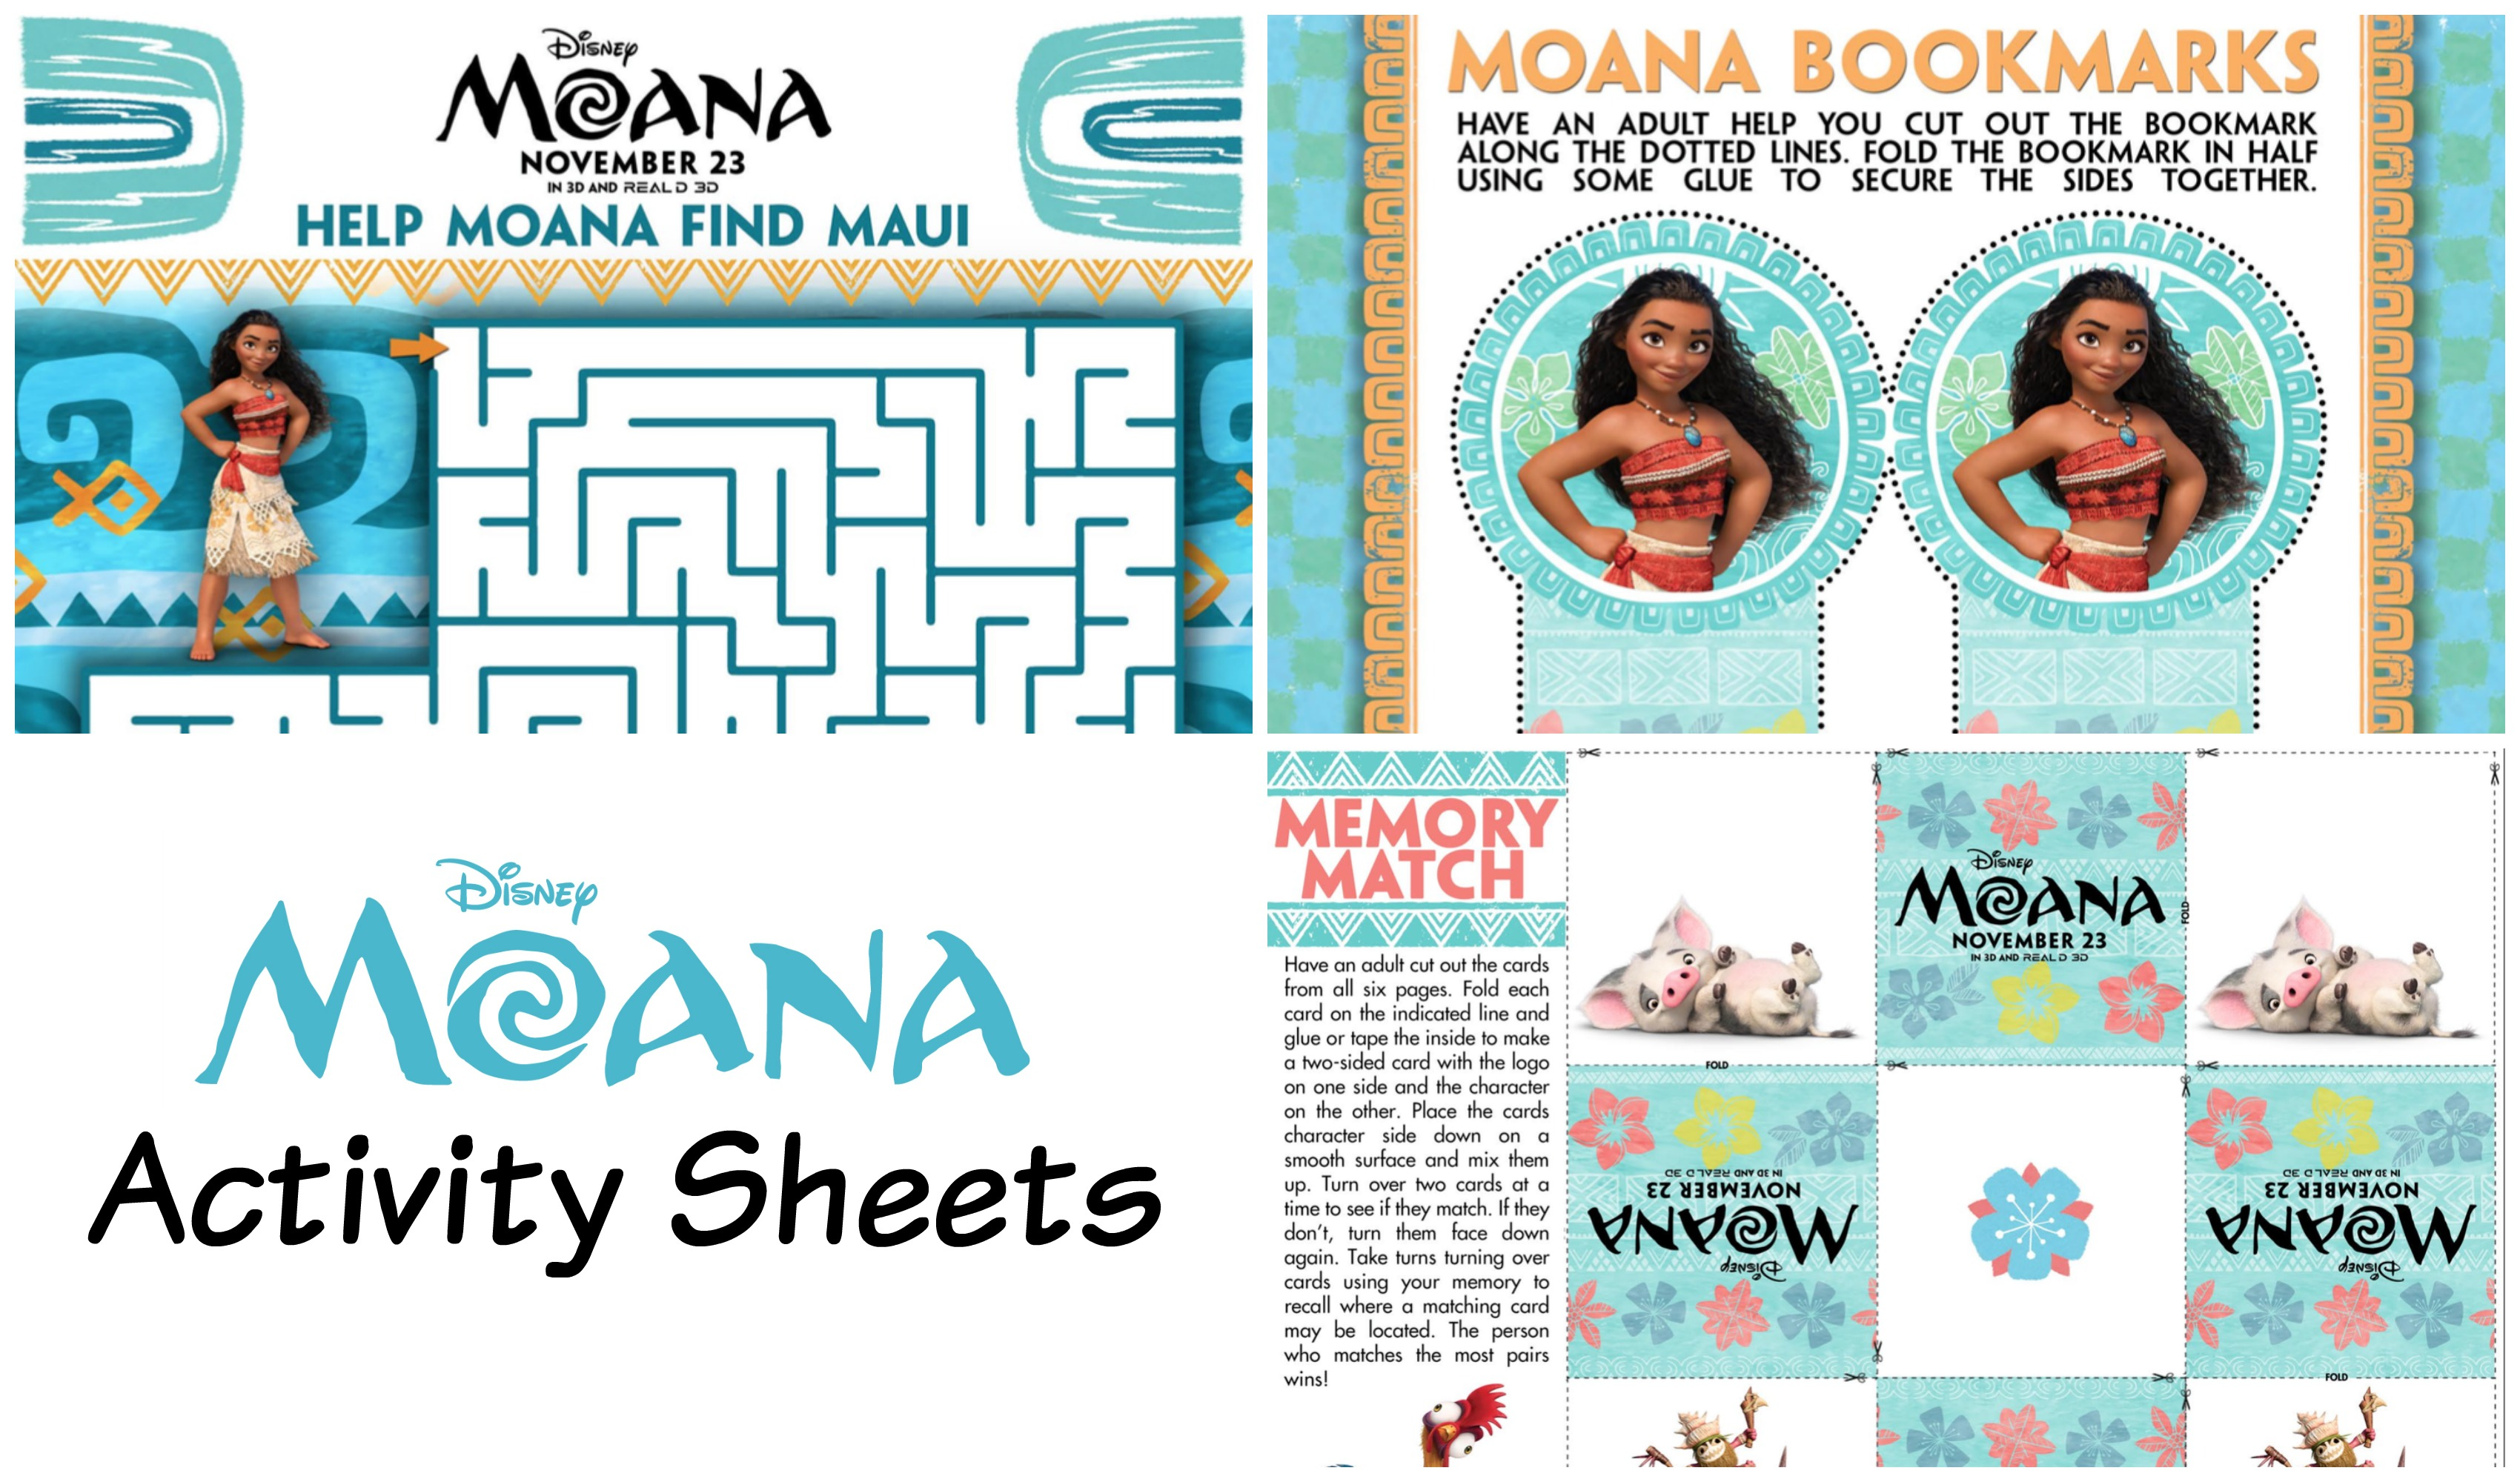 Disney S Moana Activity Sheets Moanaevent